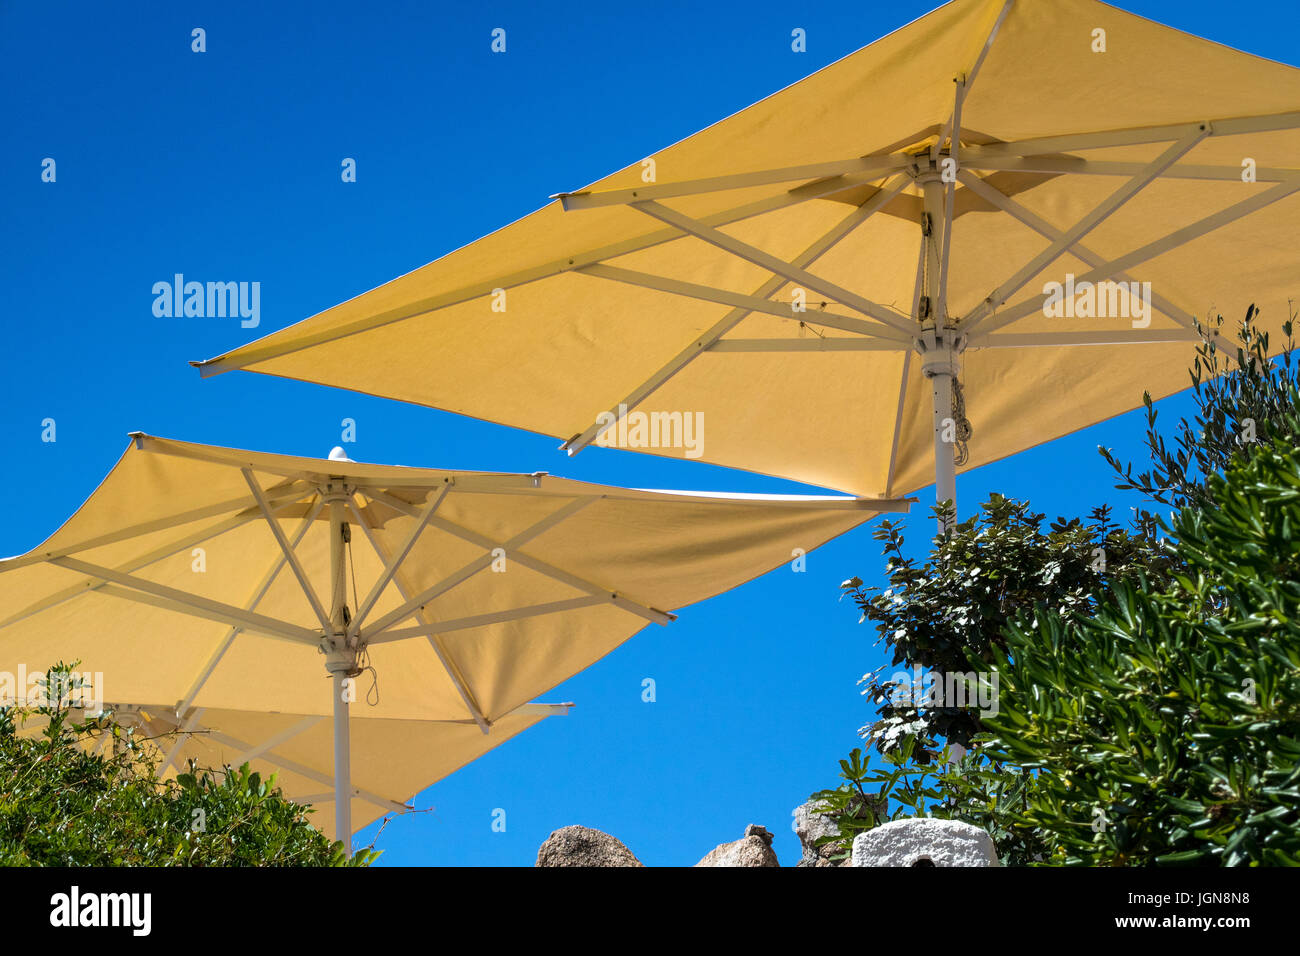 Parasols and Blue Sky - Detailed View, Looking from Beneath Bar Parasols at a Vivid Blue Sky: Baia Sardinia, Gallura, - Stock Image